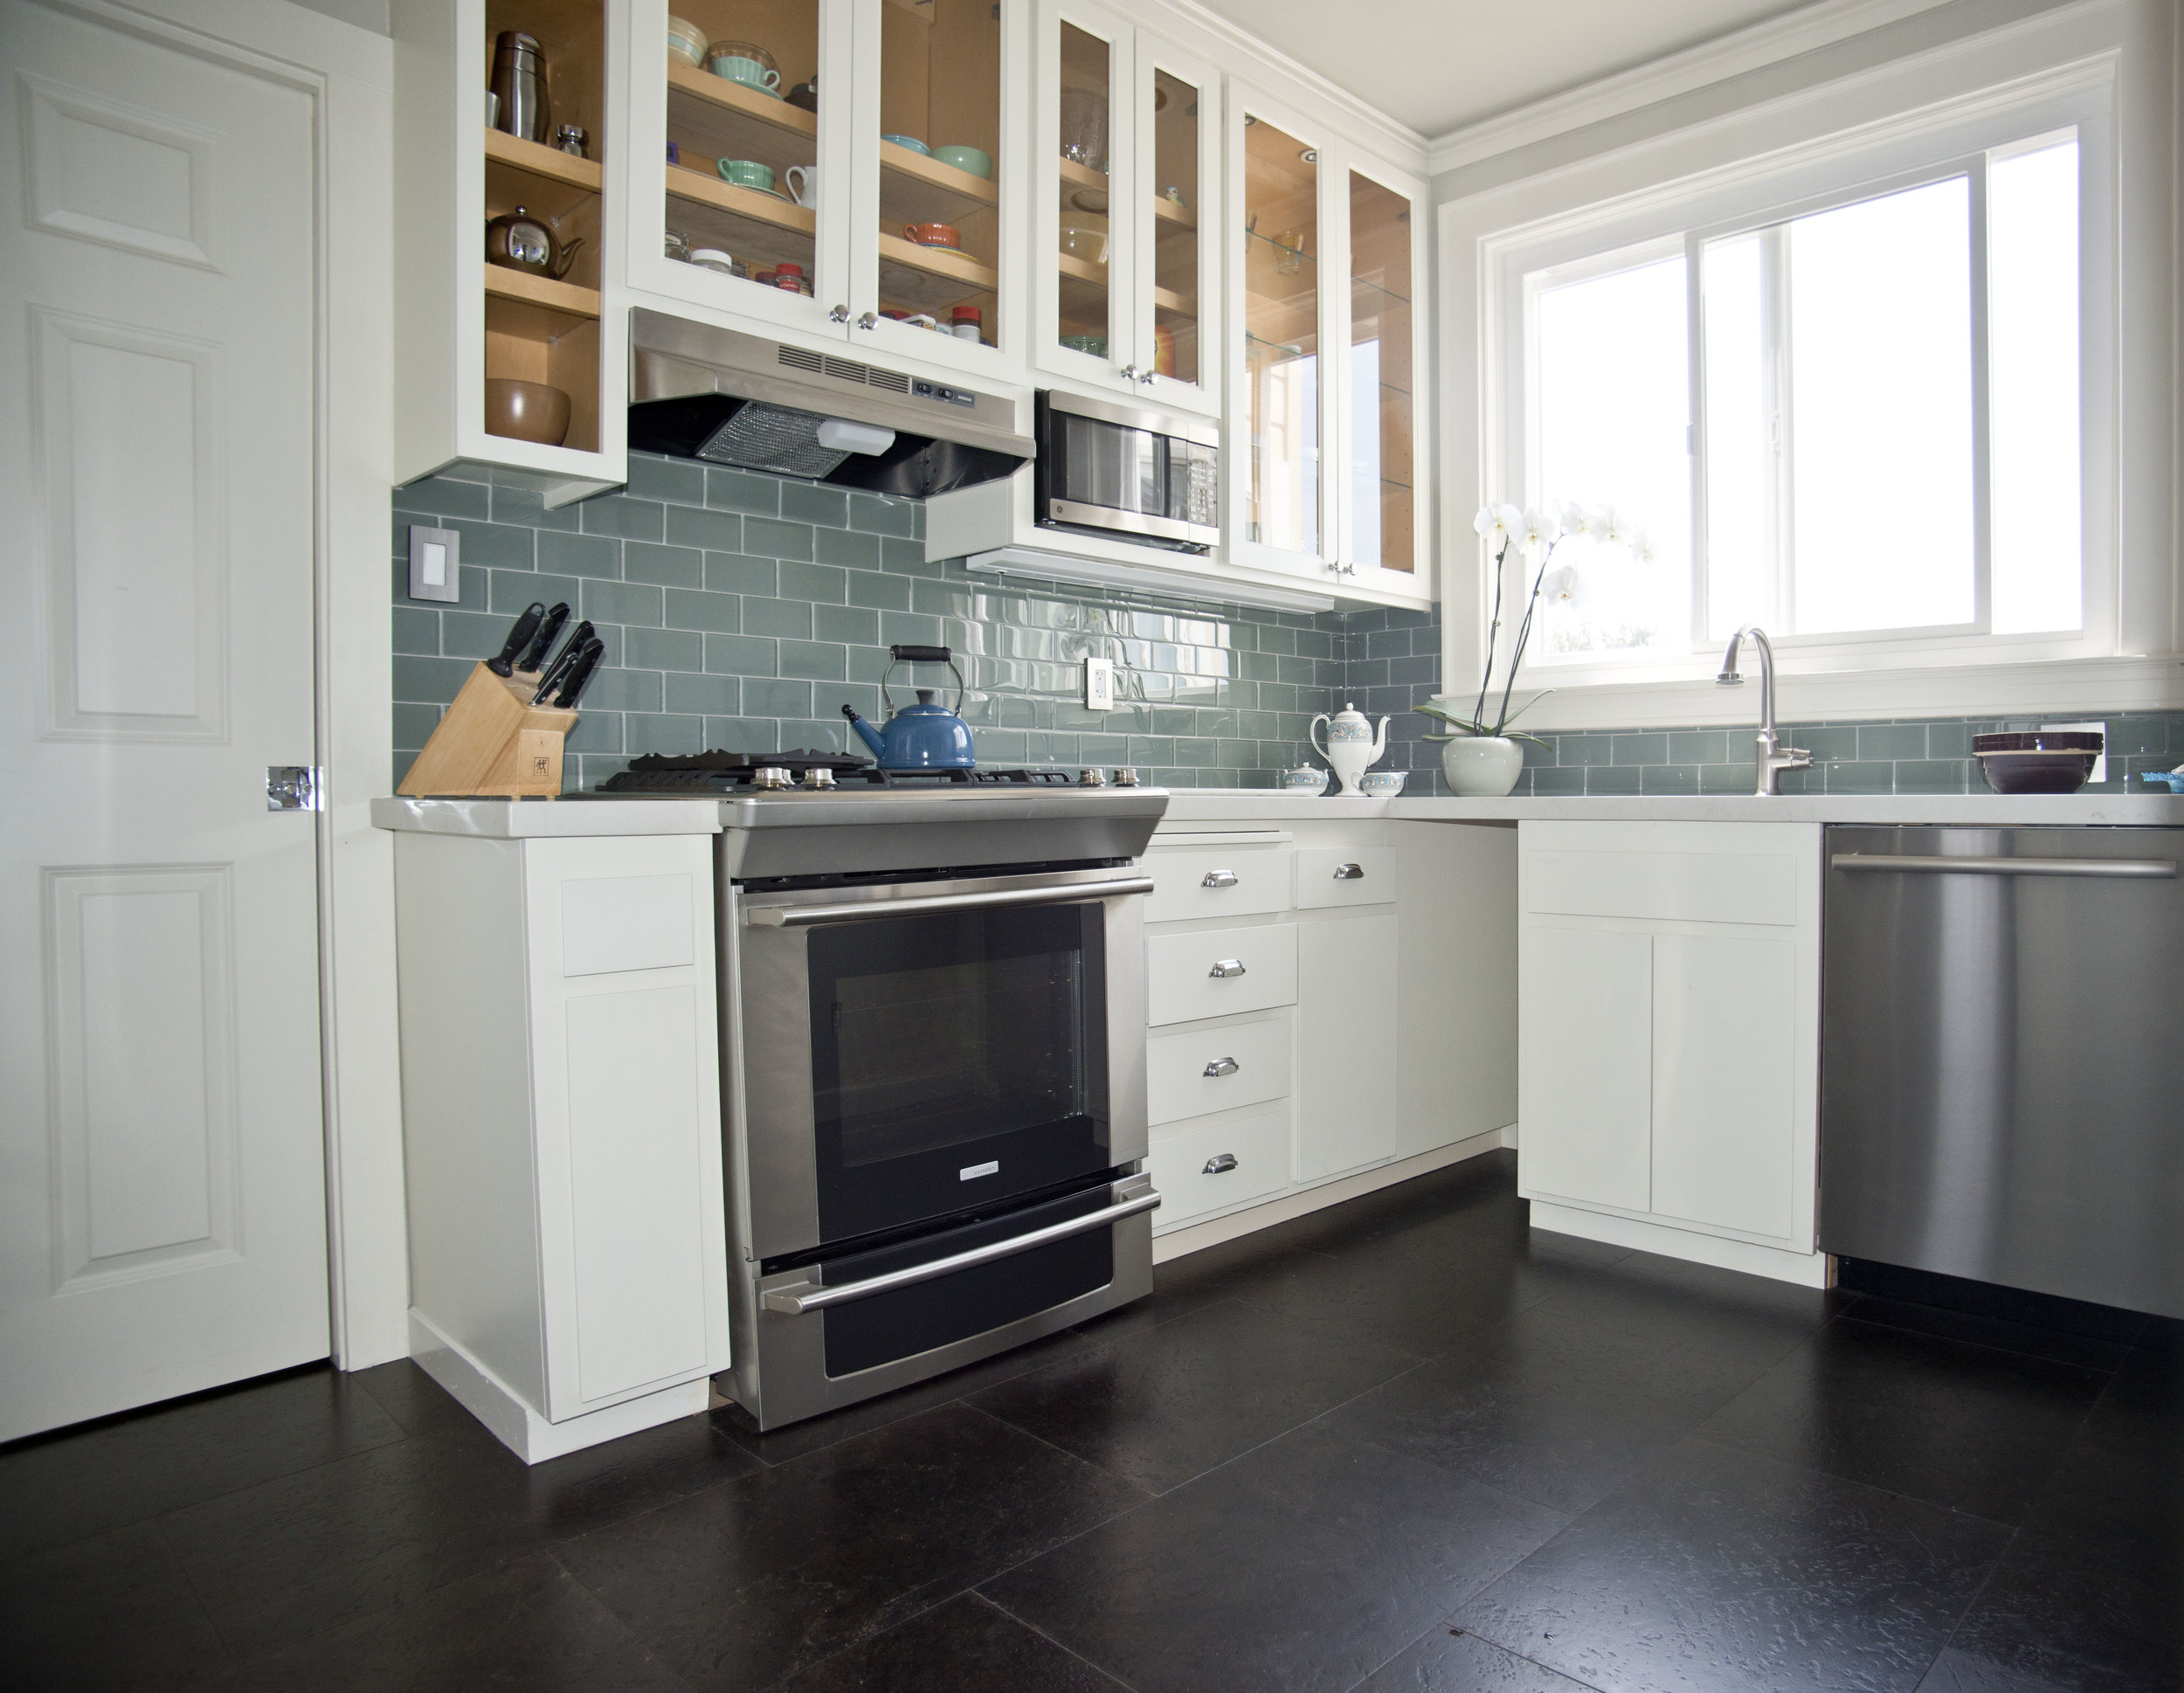 Russian Hill Condo Kitchen Remodel 1.jpg